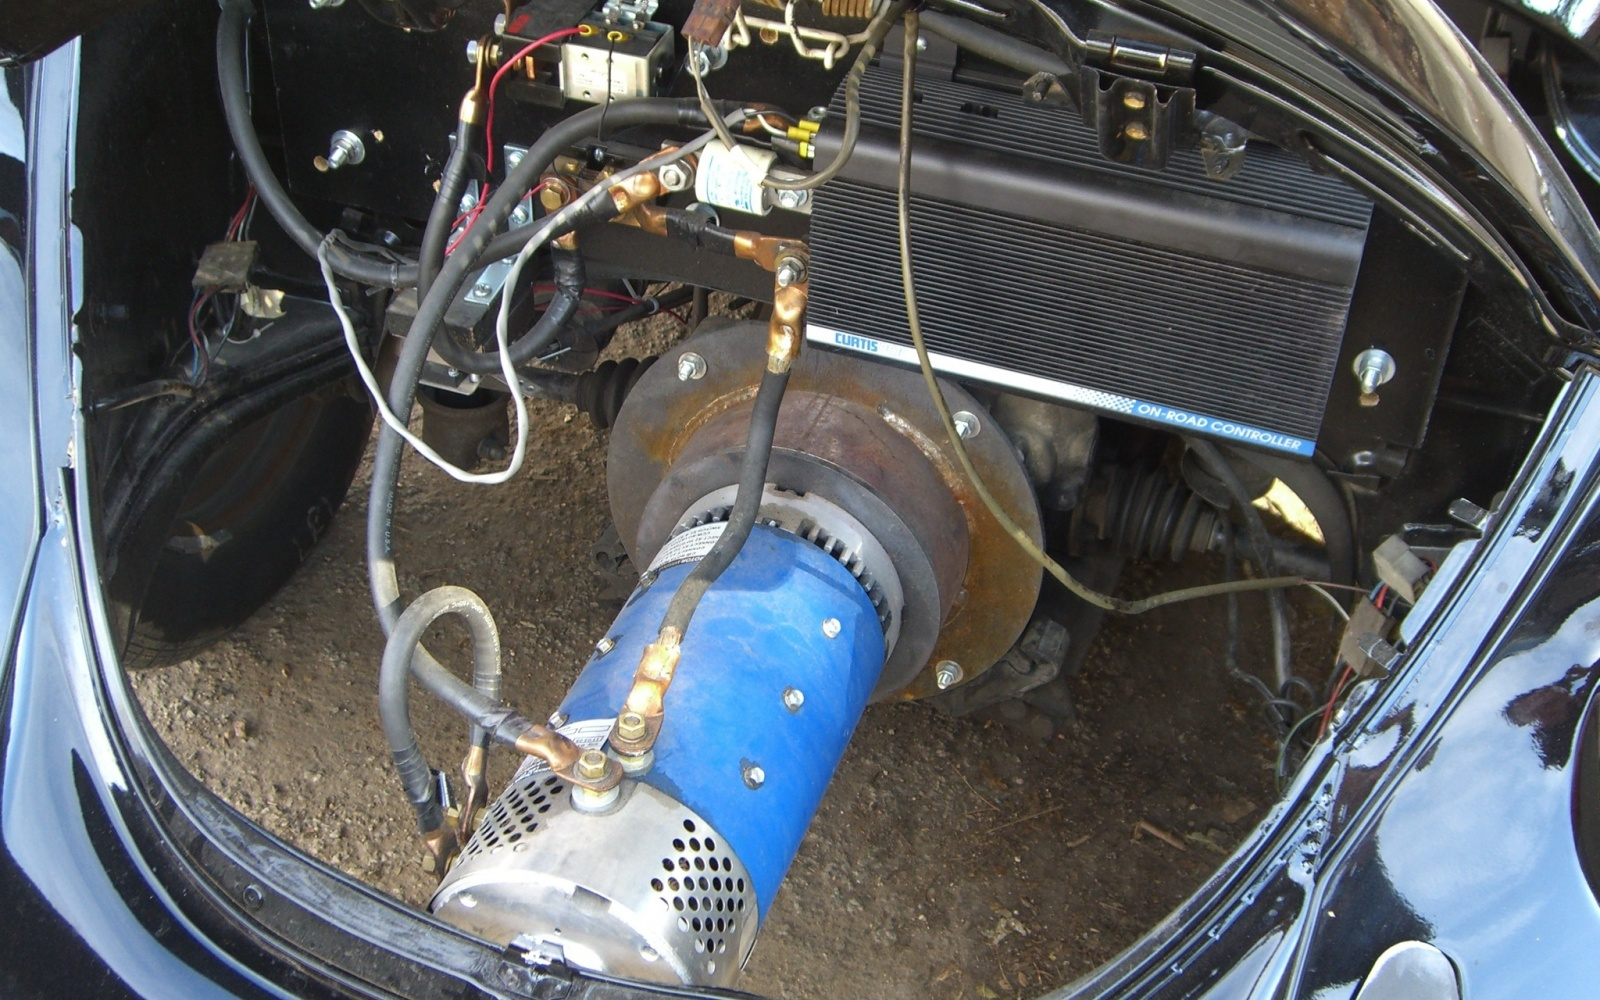 The Wilderness Electric Vehicles Kit #3 installed in a seventies Volkswagen Beetle. (Picture courtesy barnfinds.com).